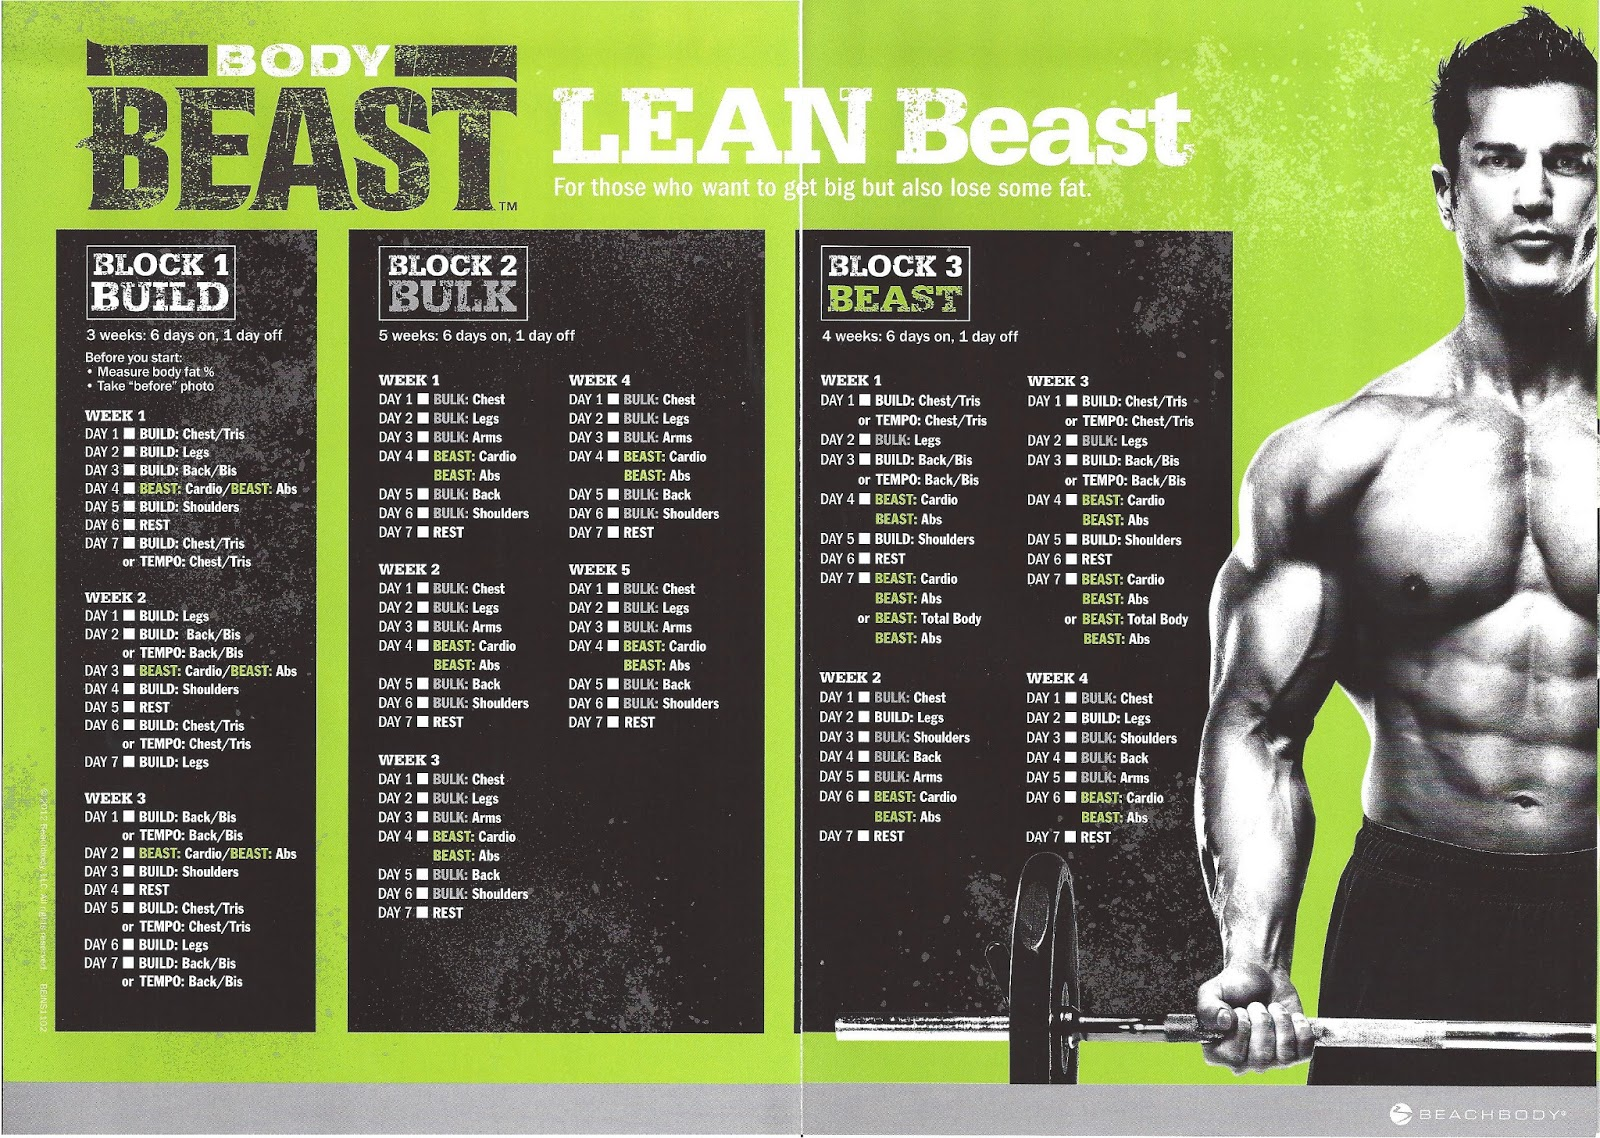 Body Beast Eating Plan Pdf